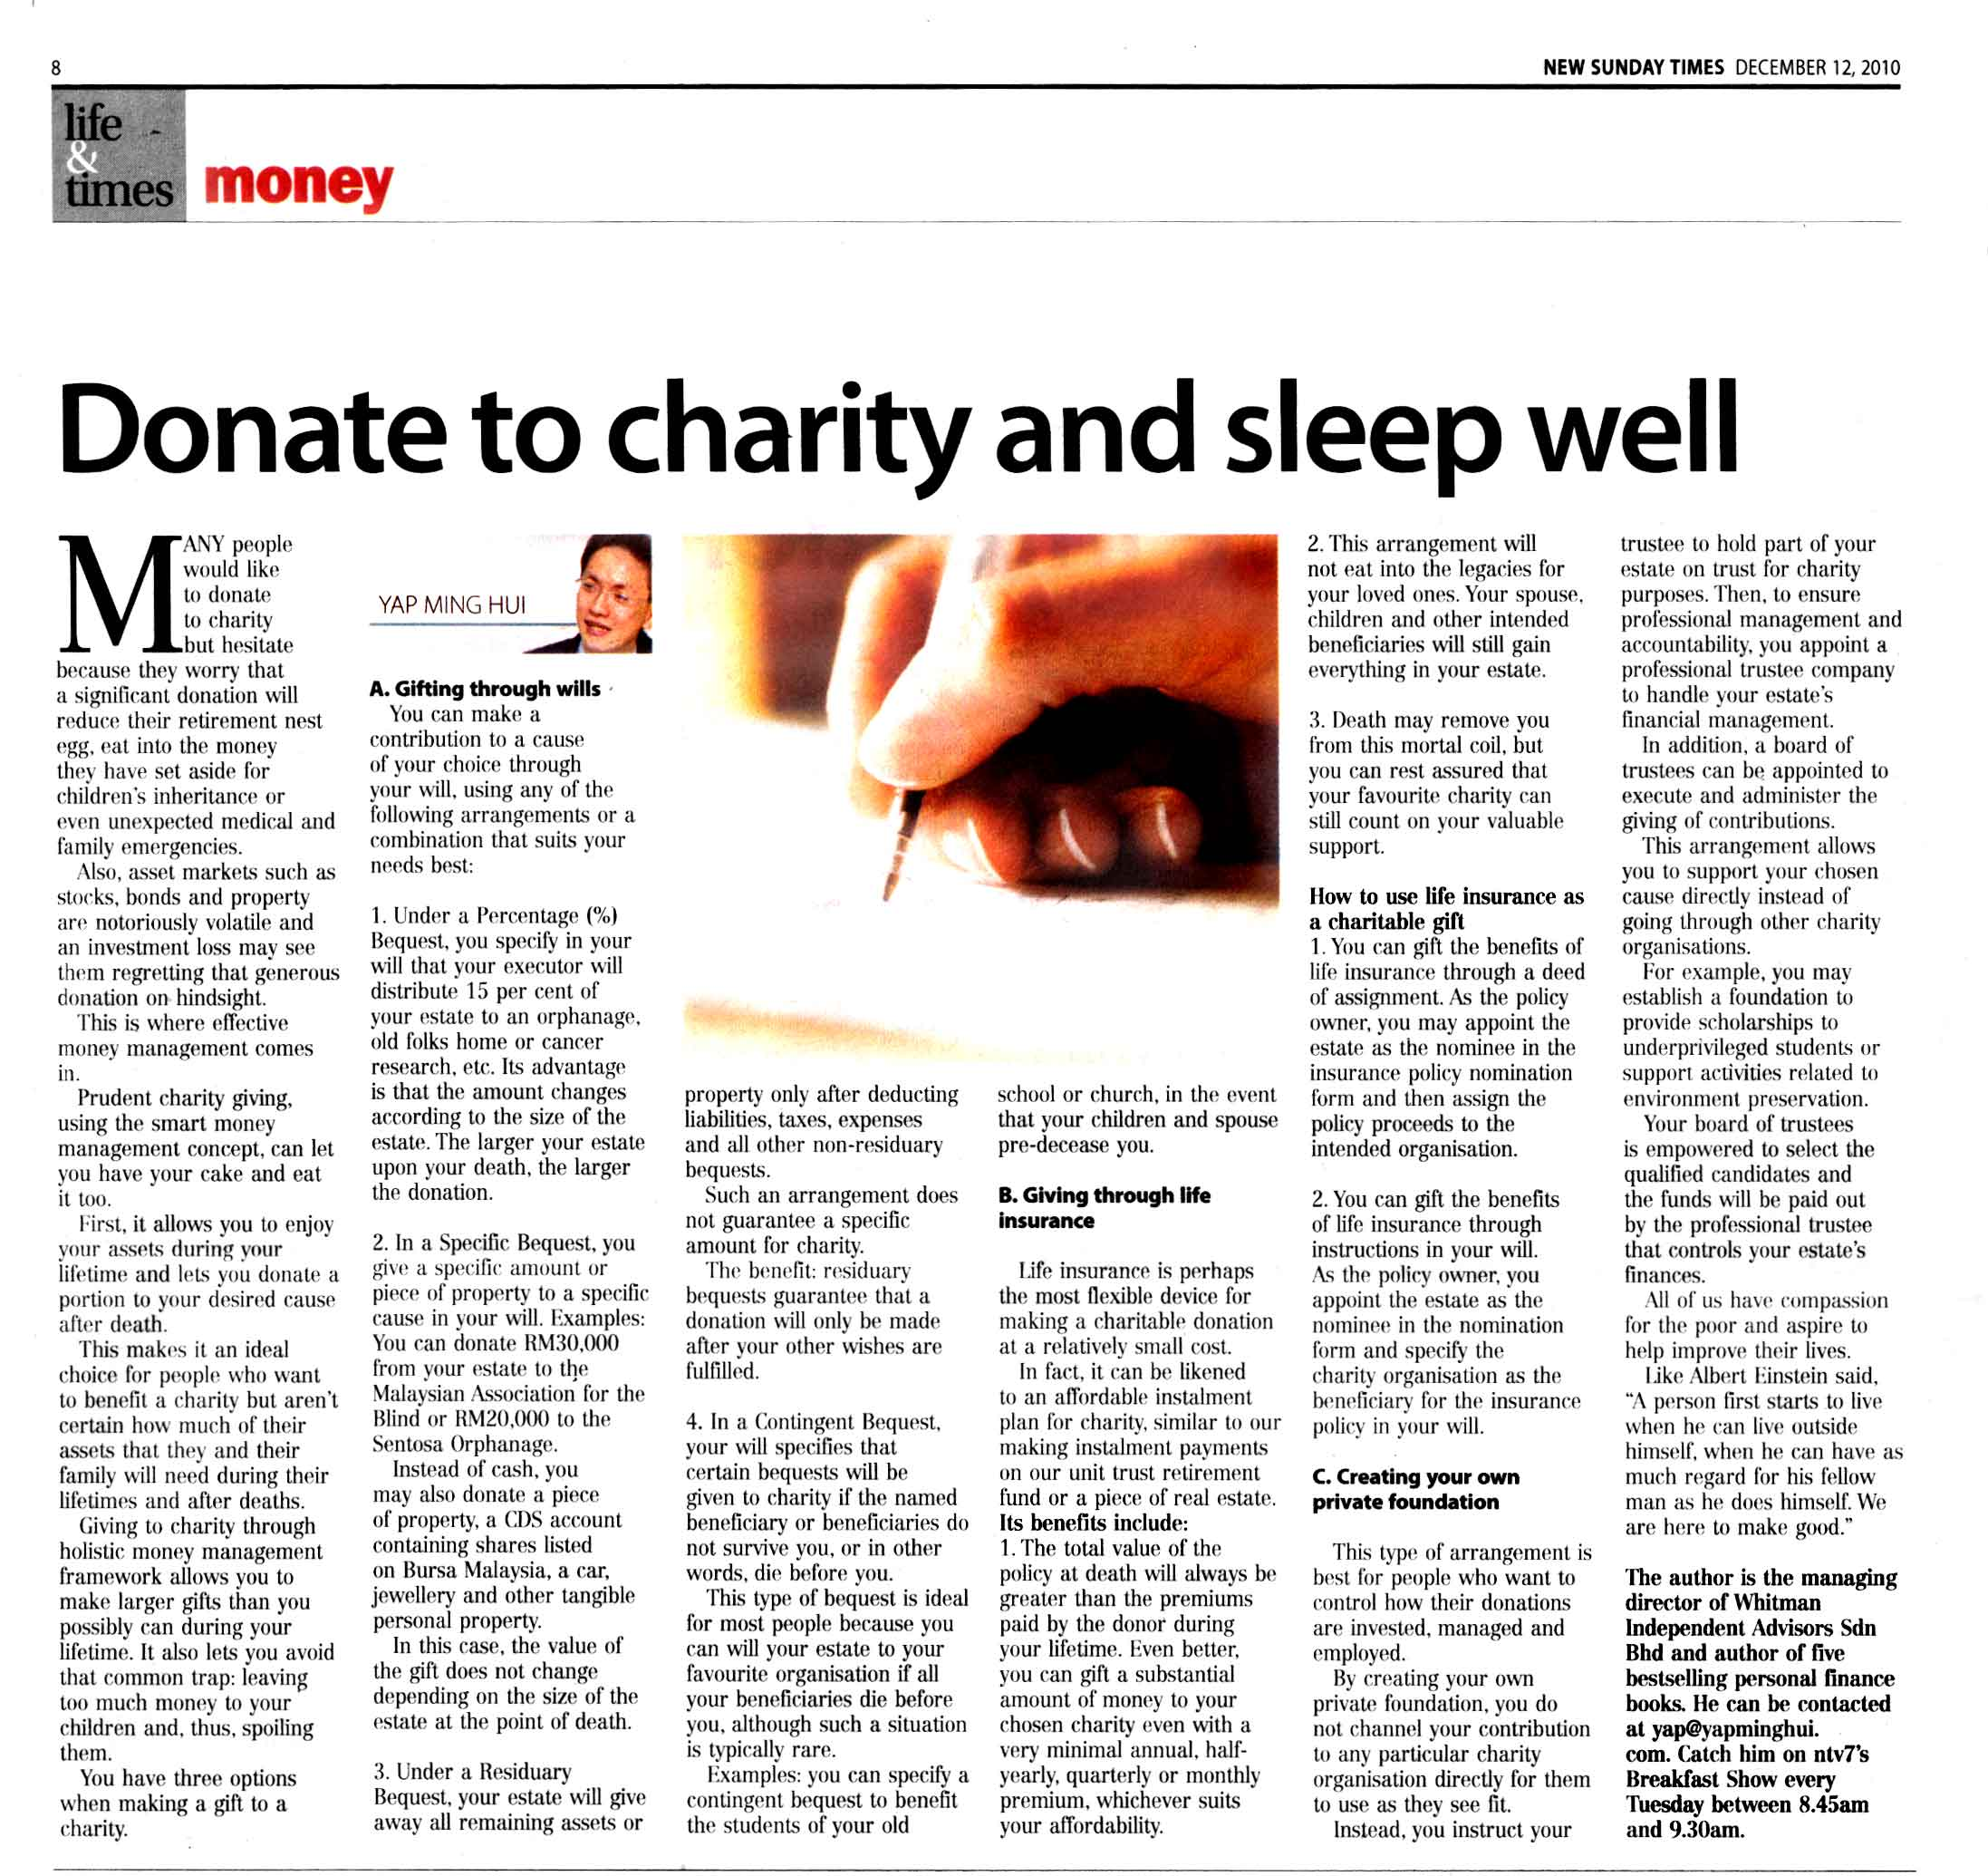 Donate to charity and sleep well (New Sunday Times) - 12 Dec 2010